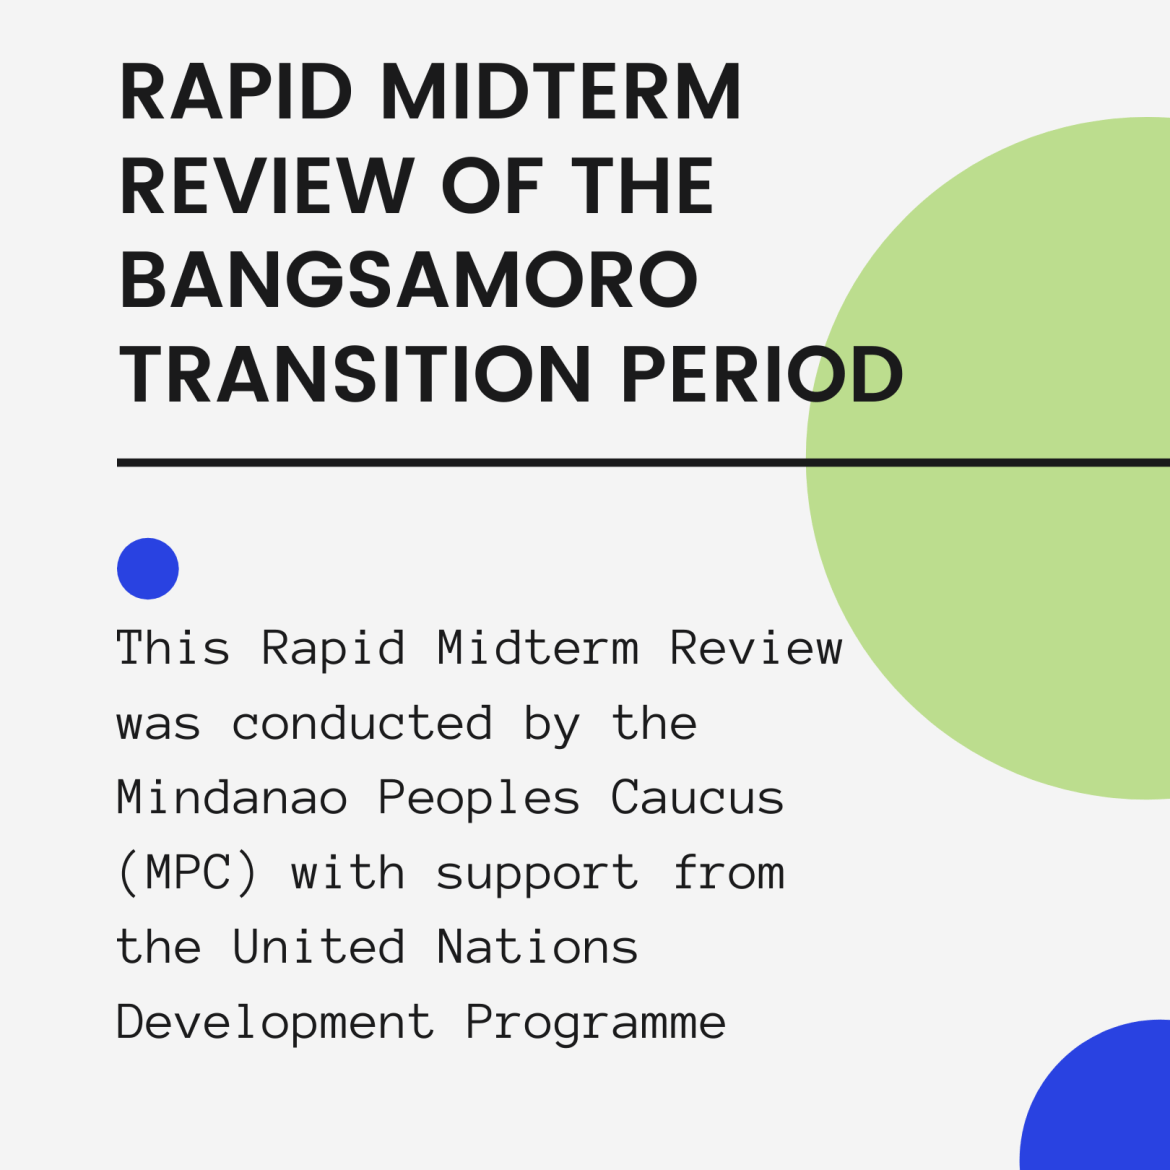 PART 1 – RAPID MIDTERM REVIEW OF THE BANGSAMORO TRANSITION PERIOD